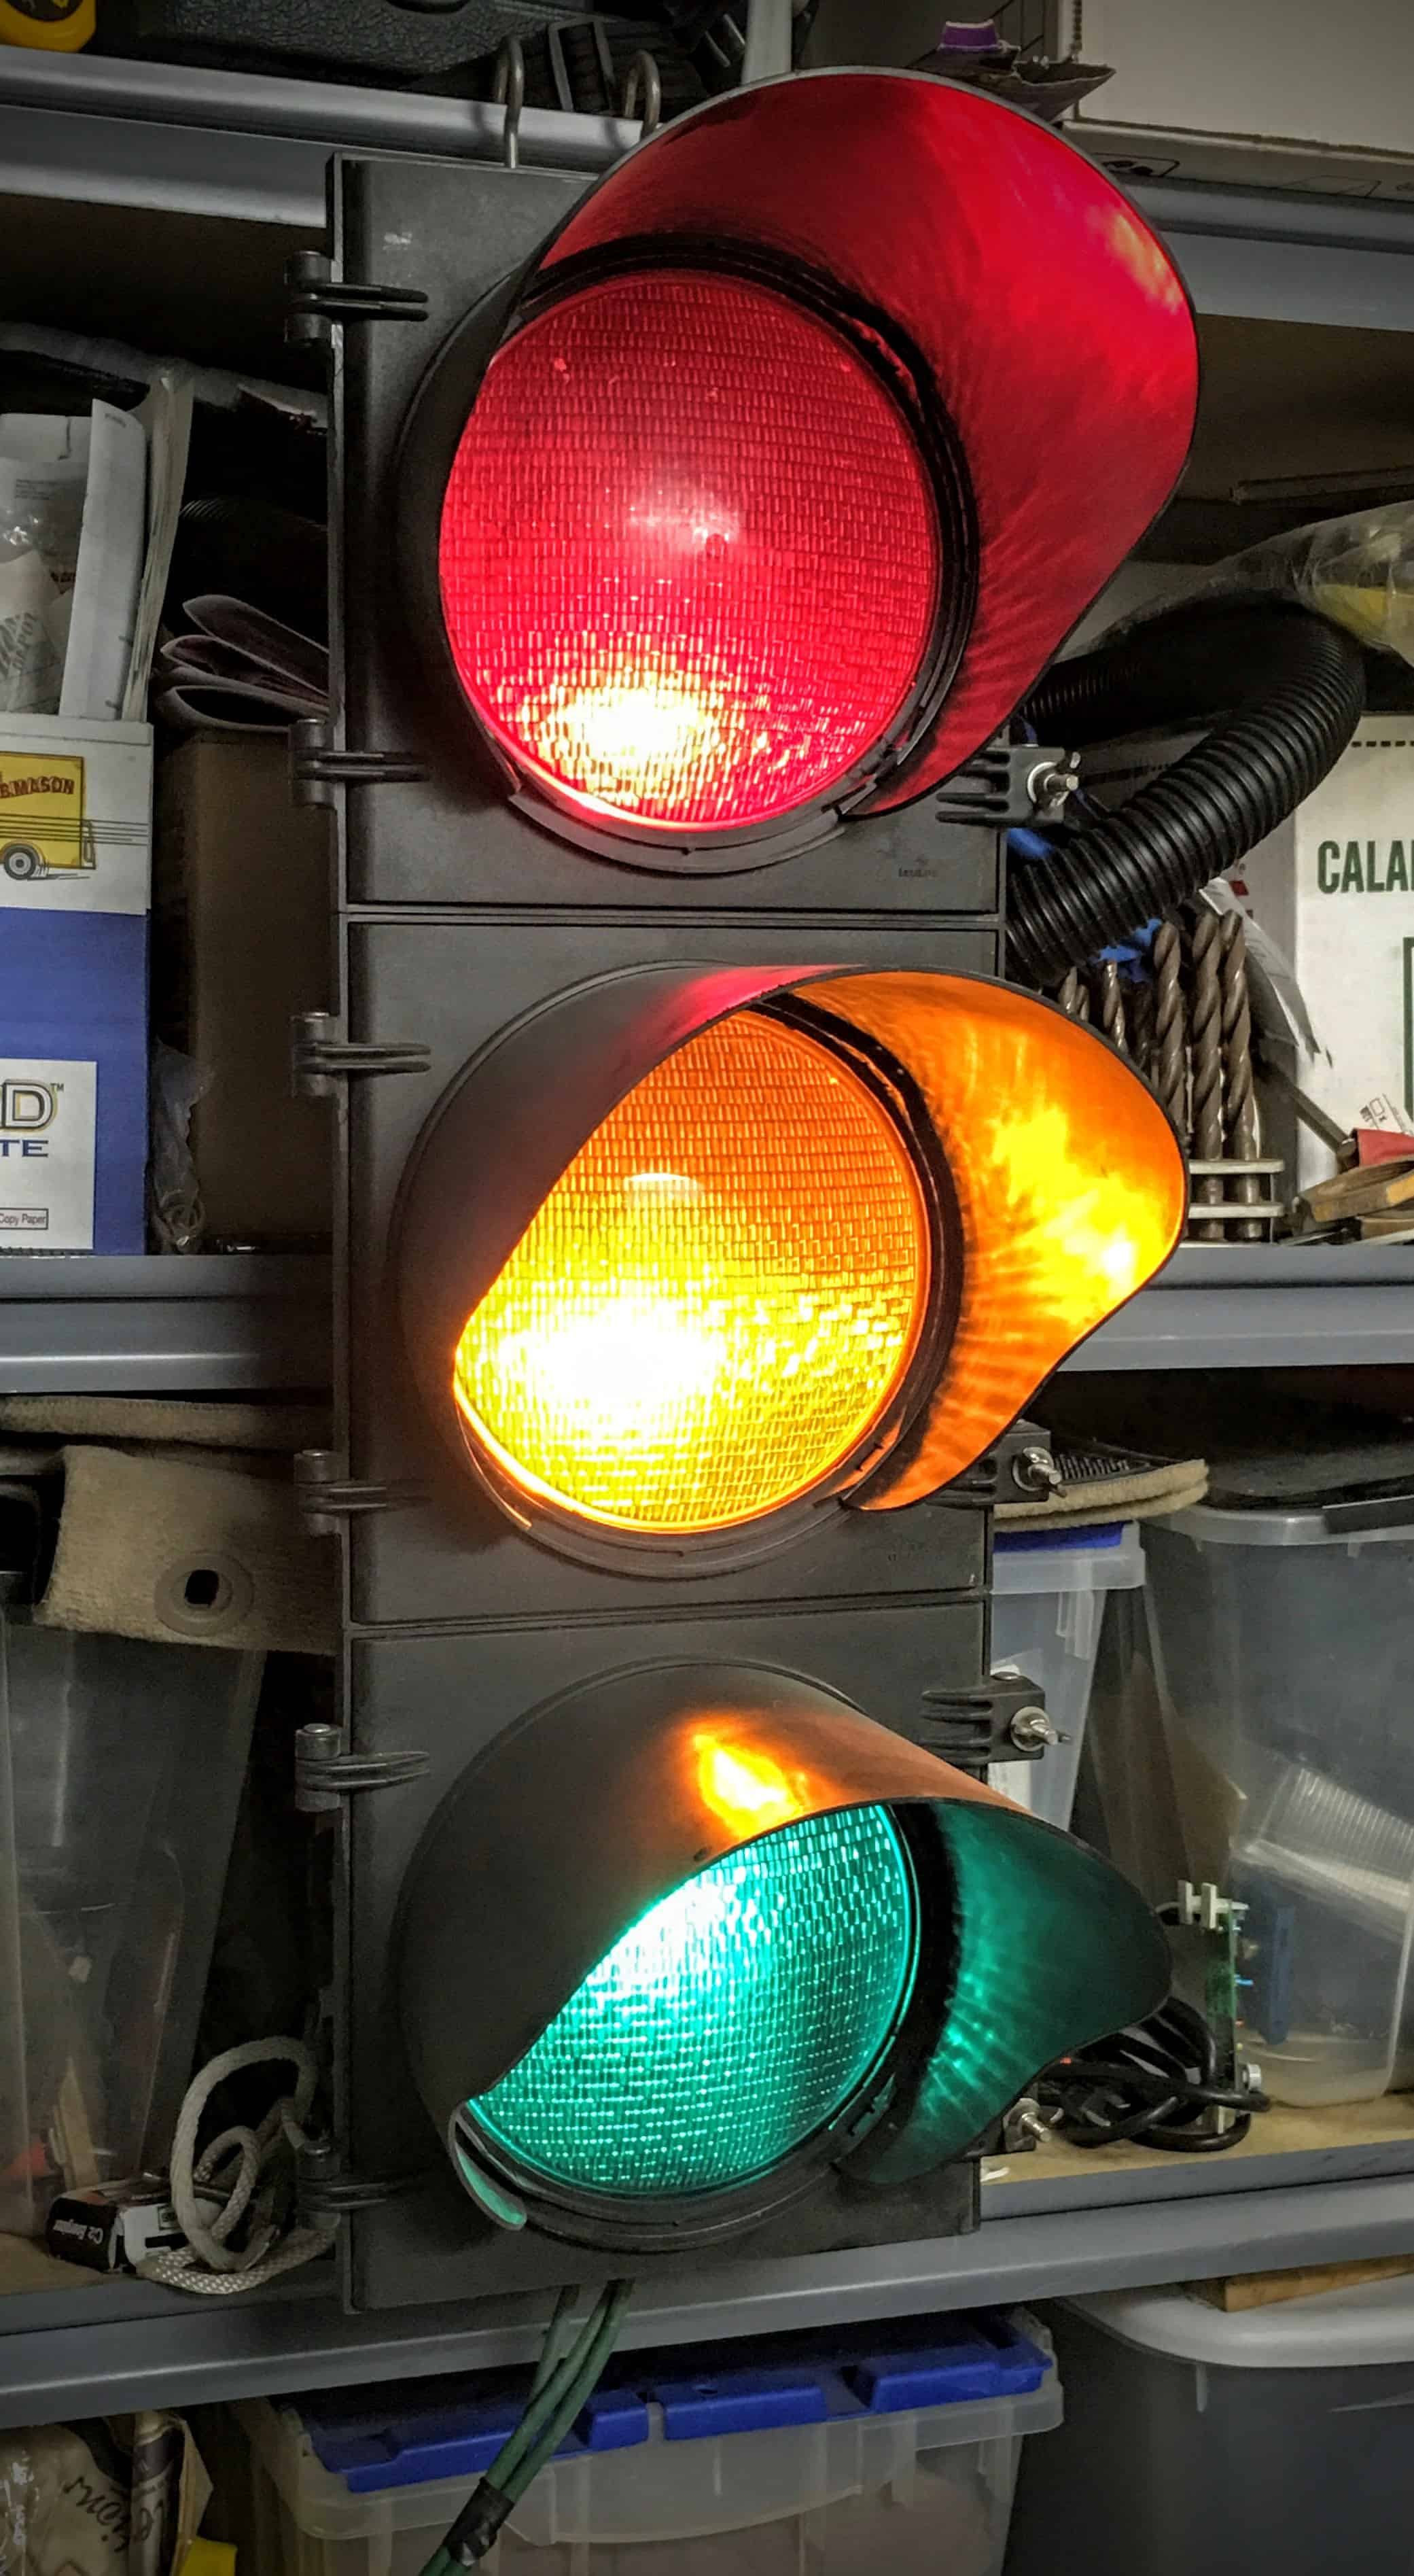 My Light And Airy Living Room Transformation: Real Traffic Lights In My Collection Make Great